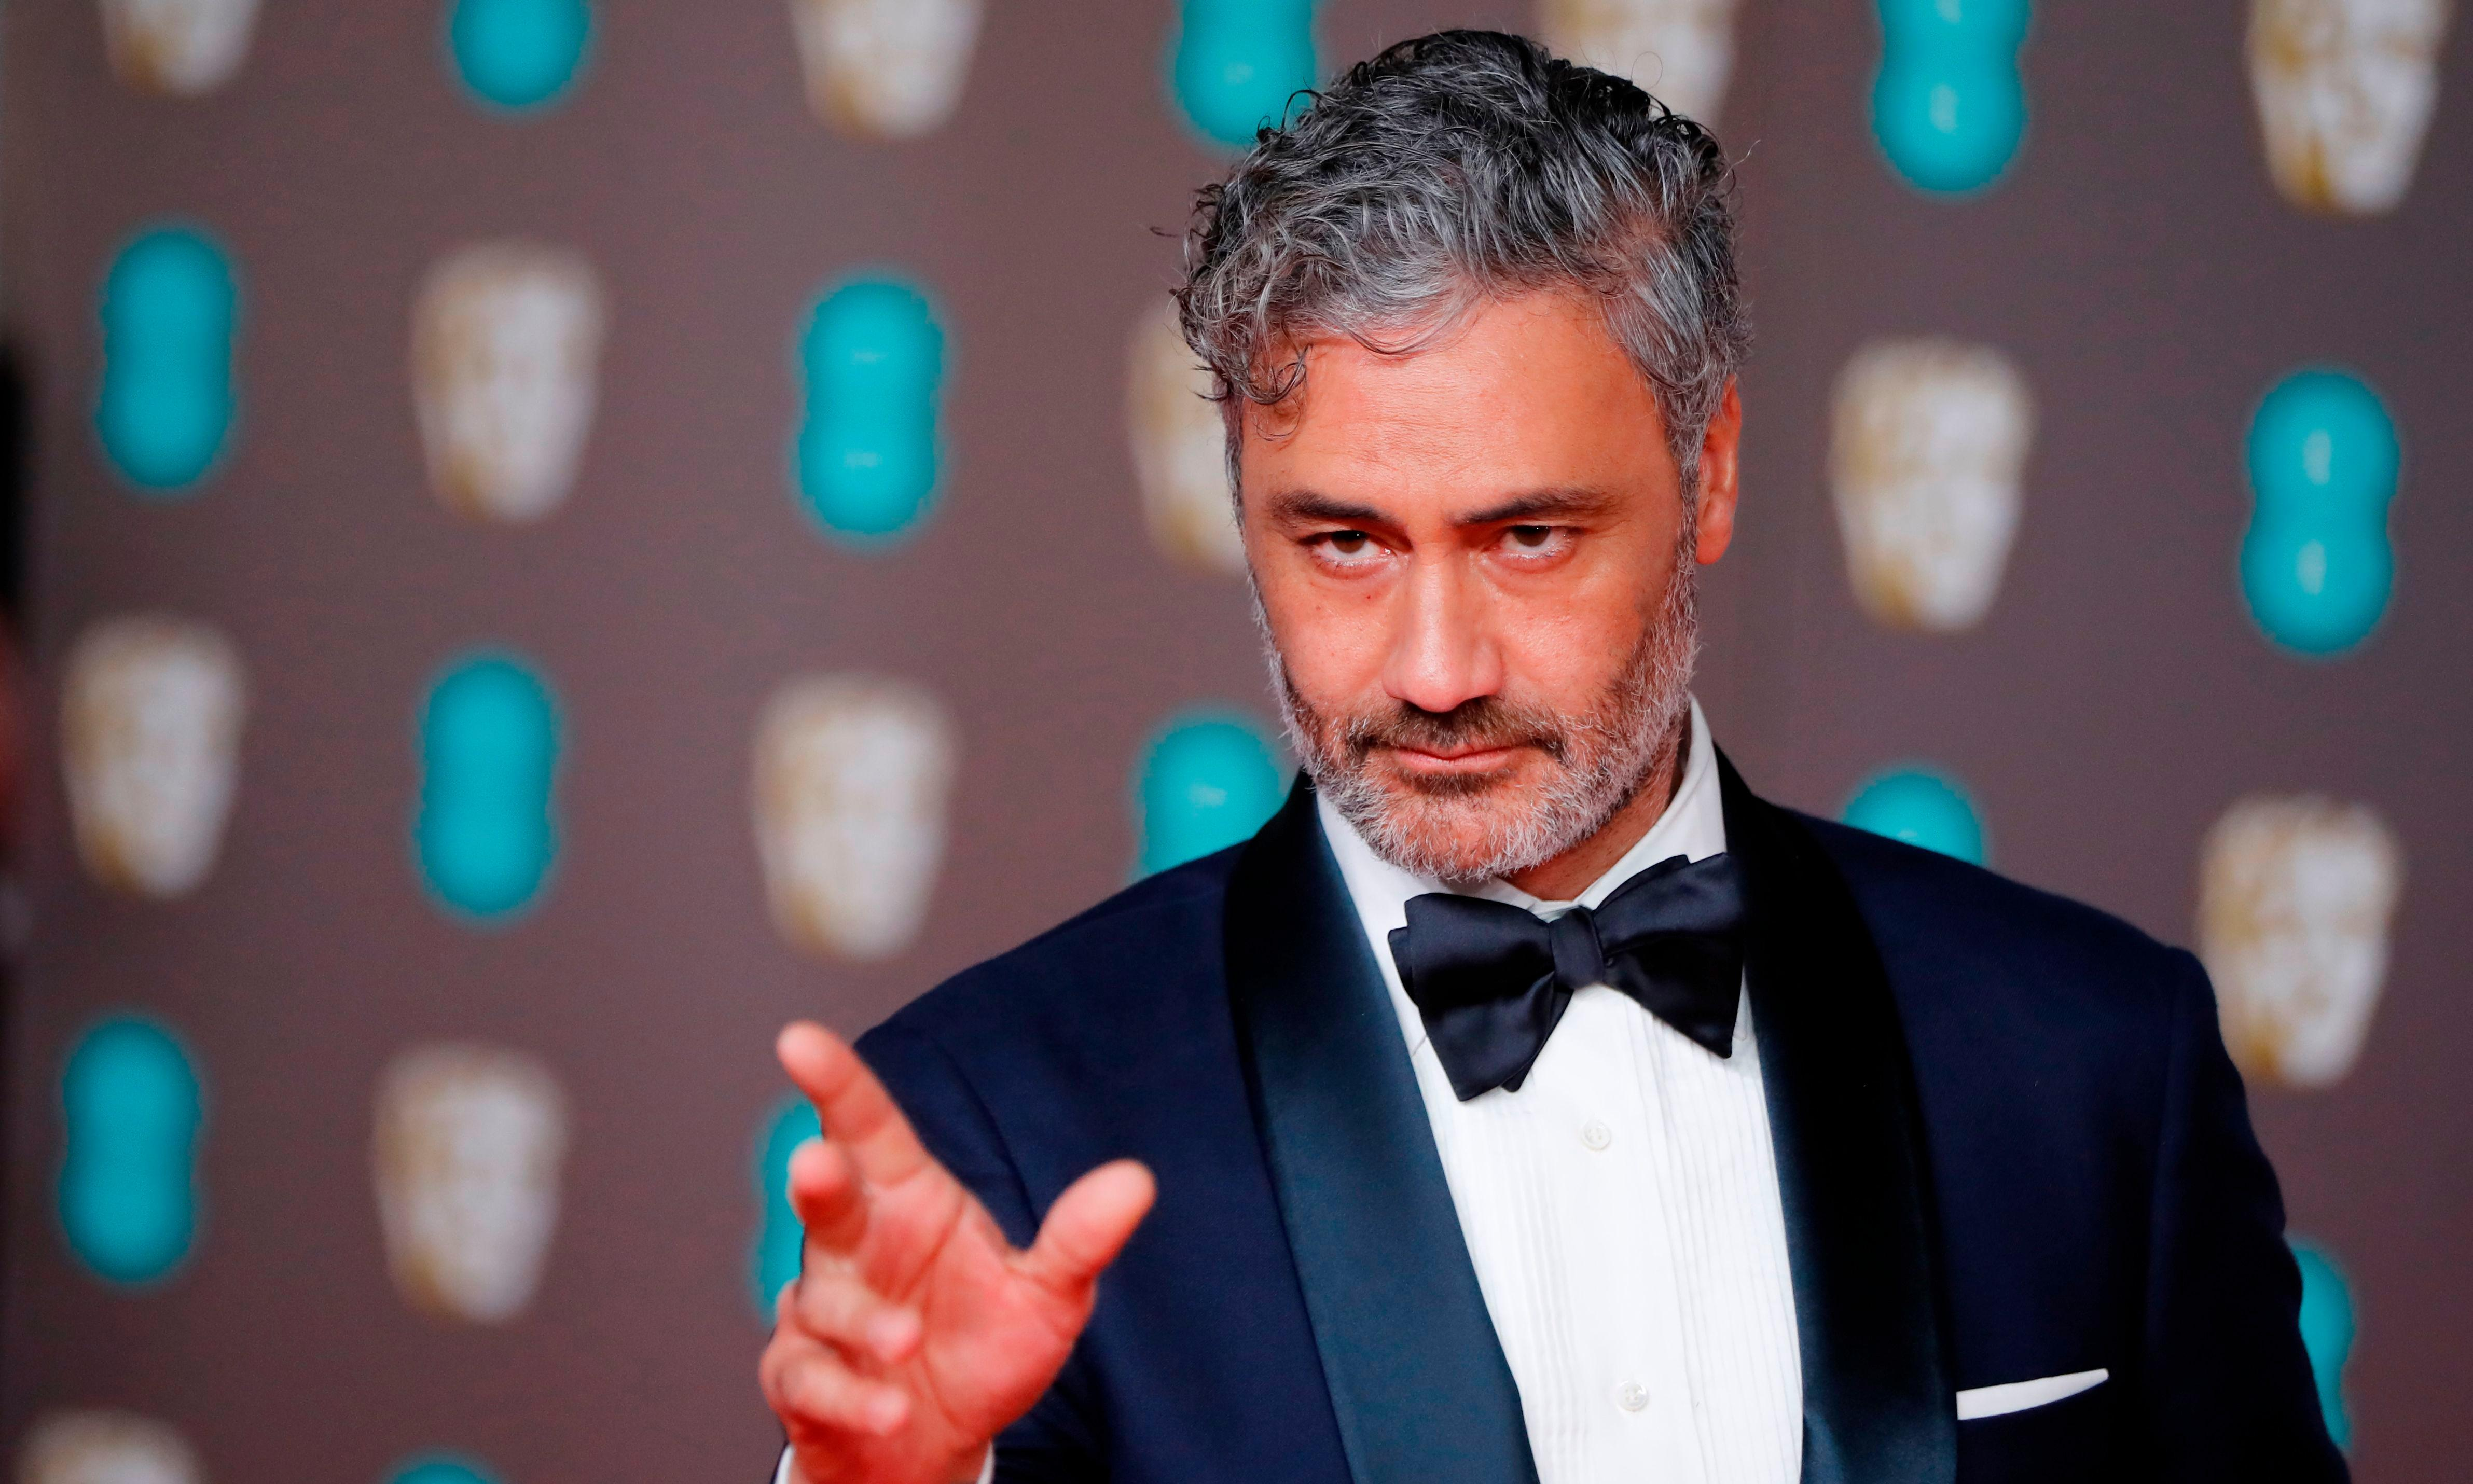 I didn't love Taika Waititi's movie, but I feel his shoulder – and back, and neck – pain